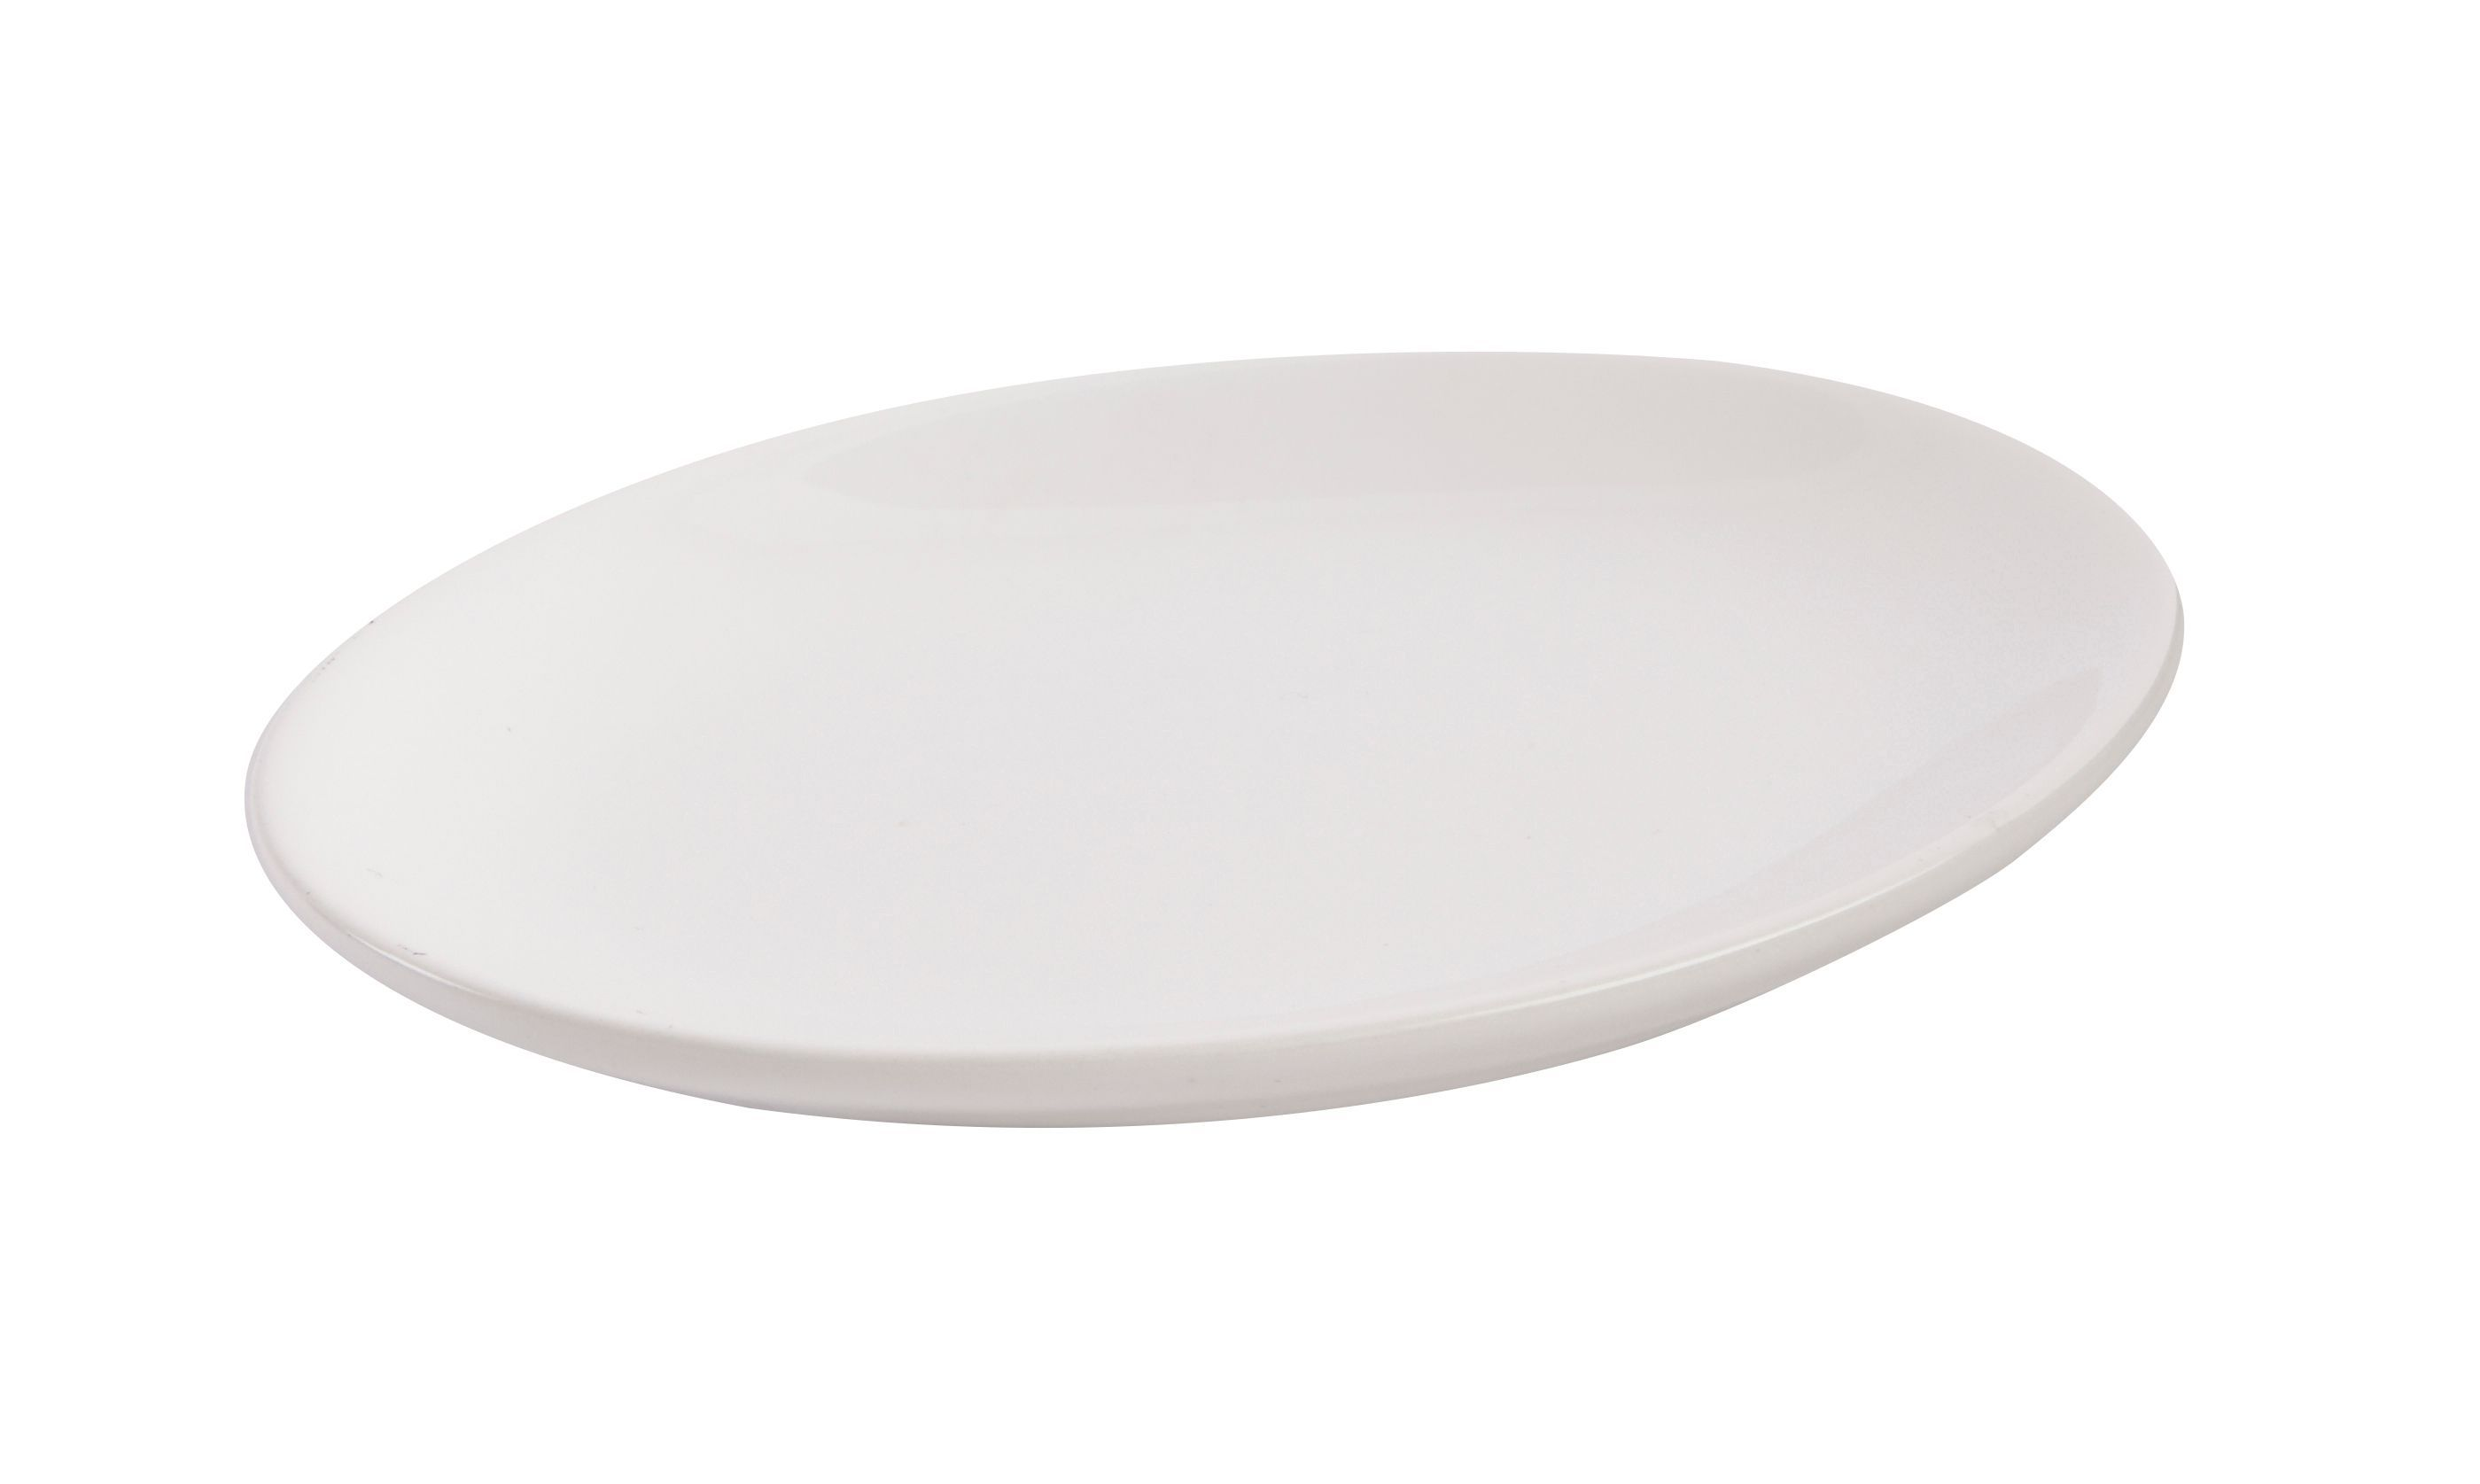 Cooke & Lewis Diani White Gloss Soap Dish